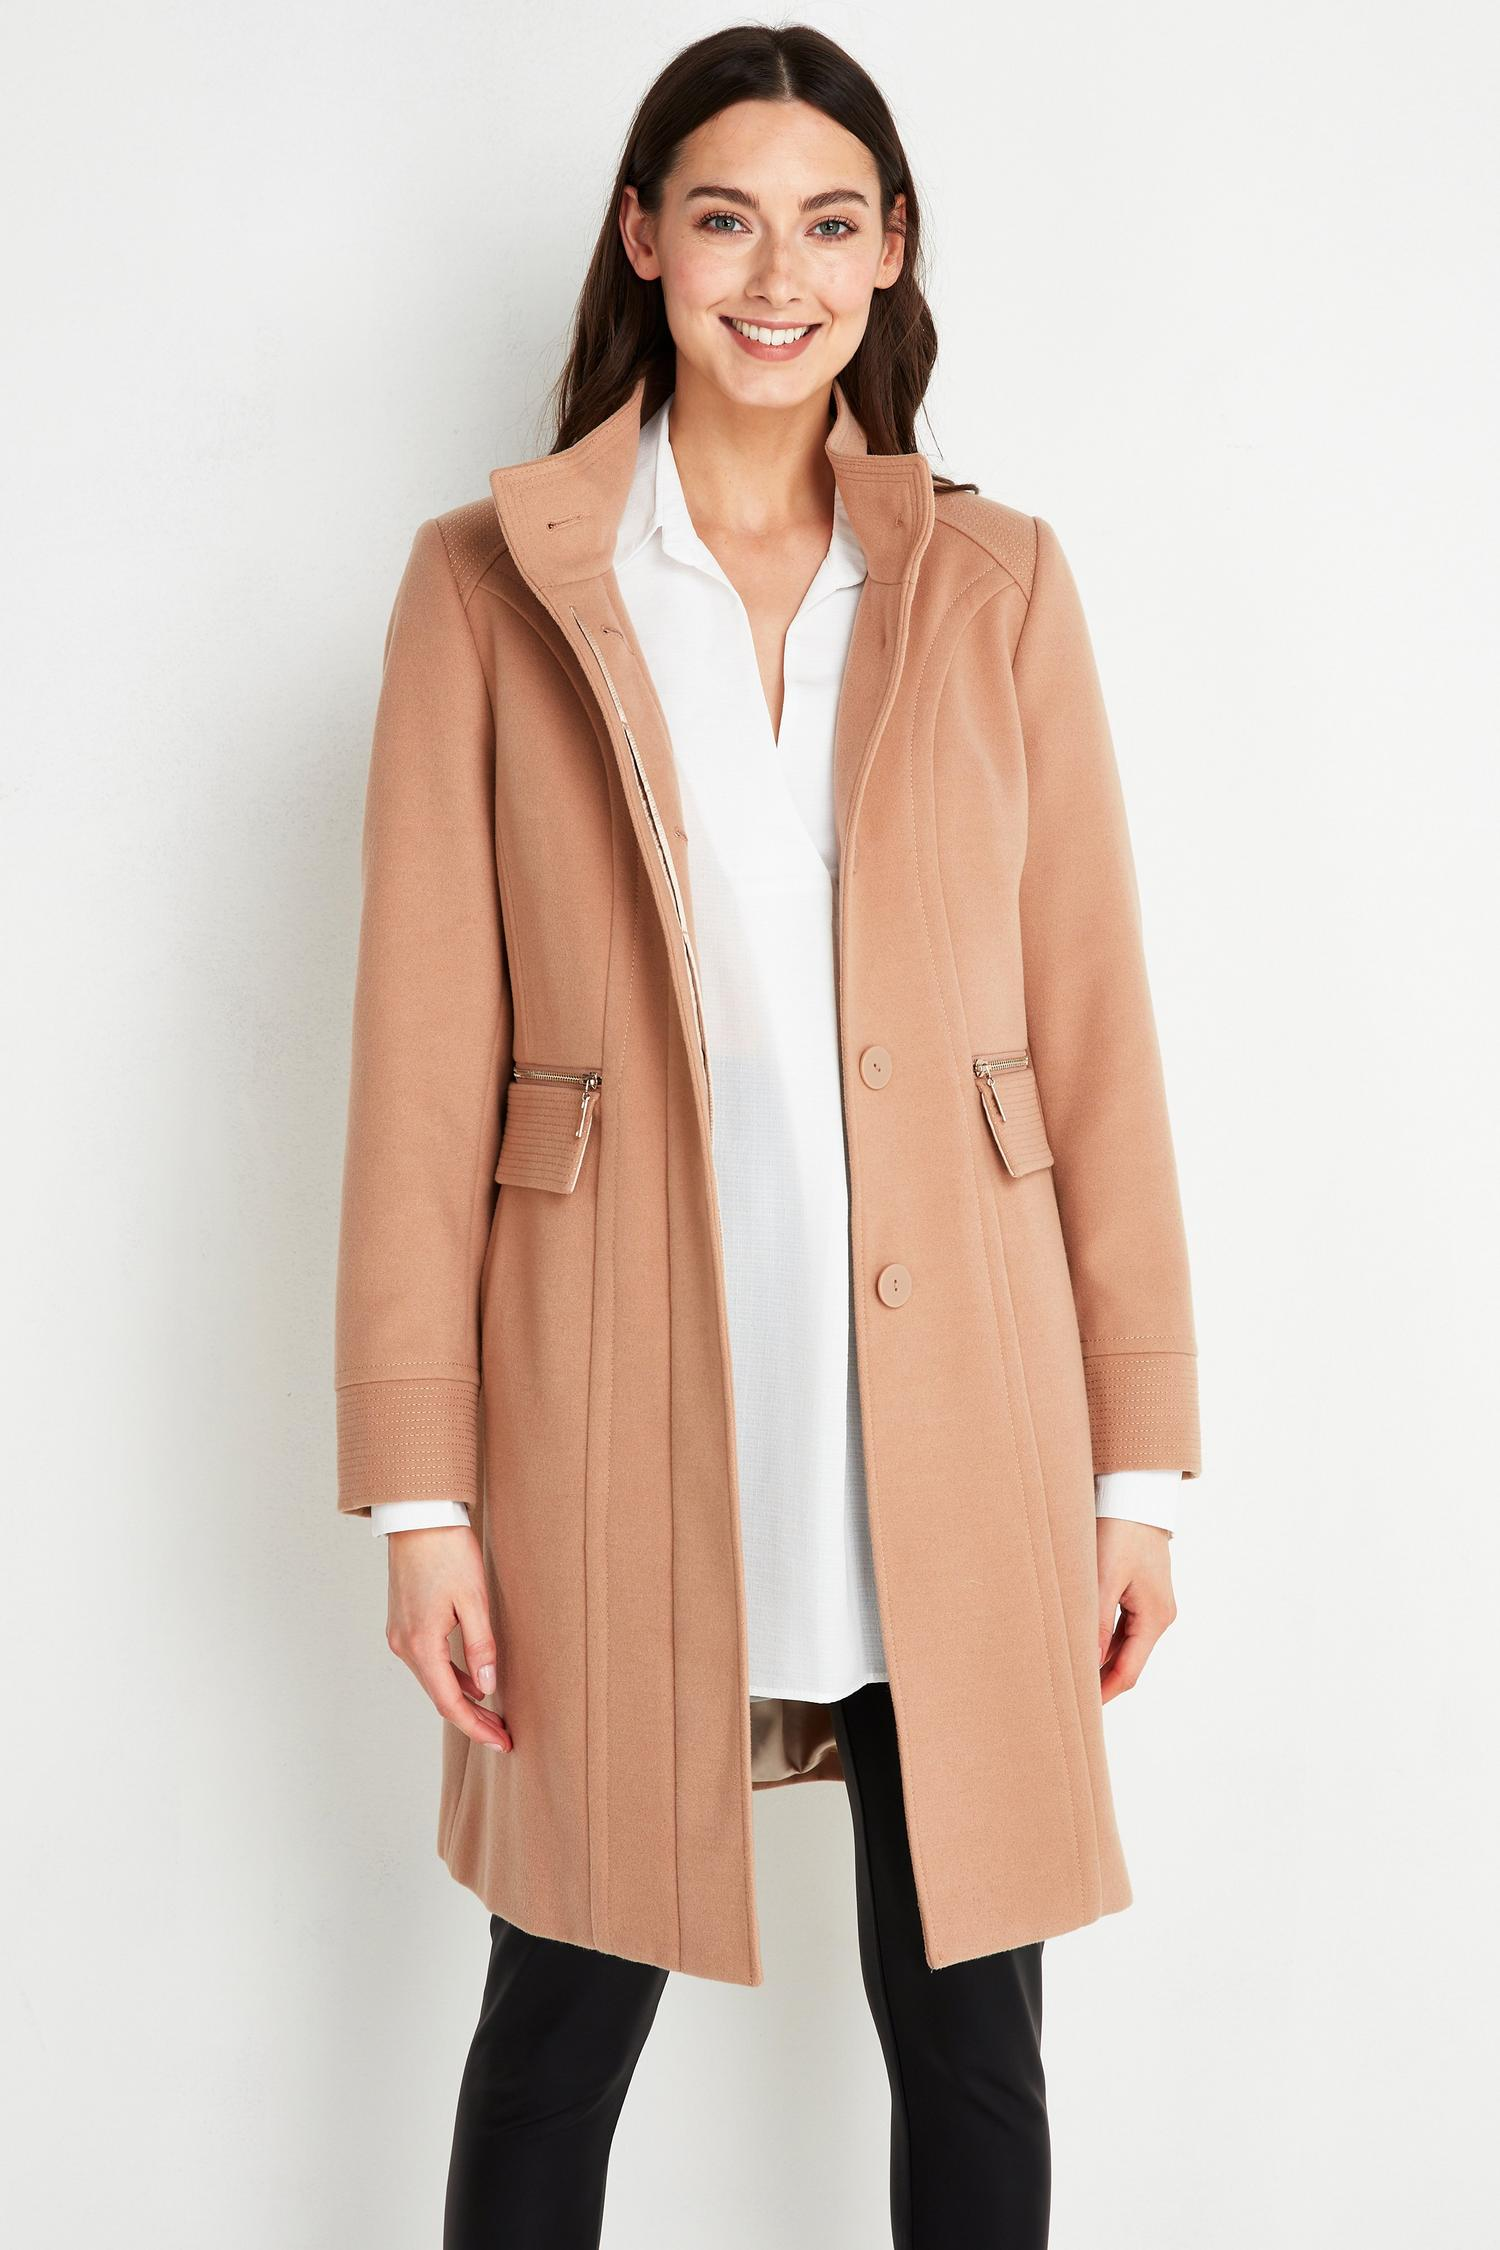 111 TALL Camel Faux Wool Funnel Neck Coat image number 3